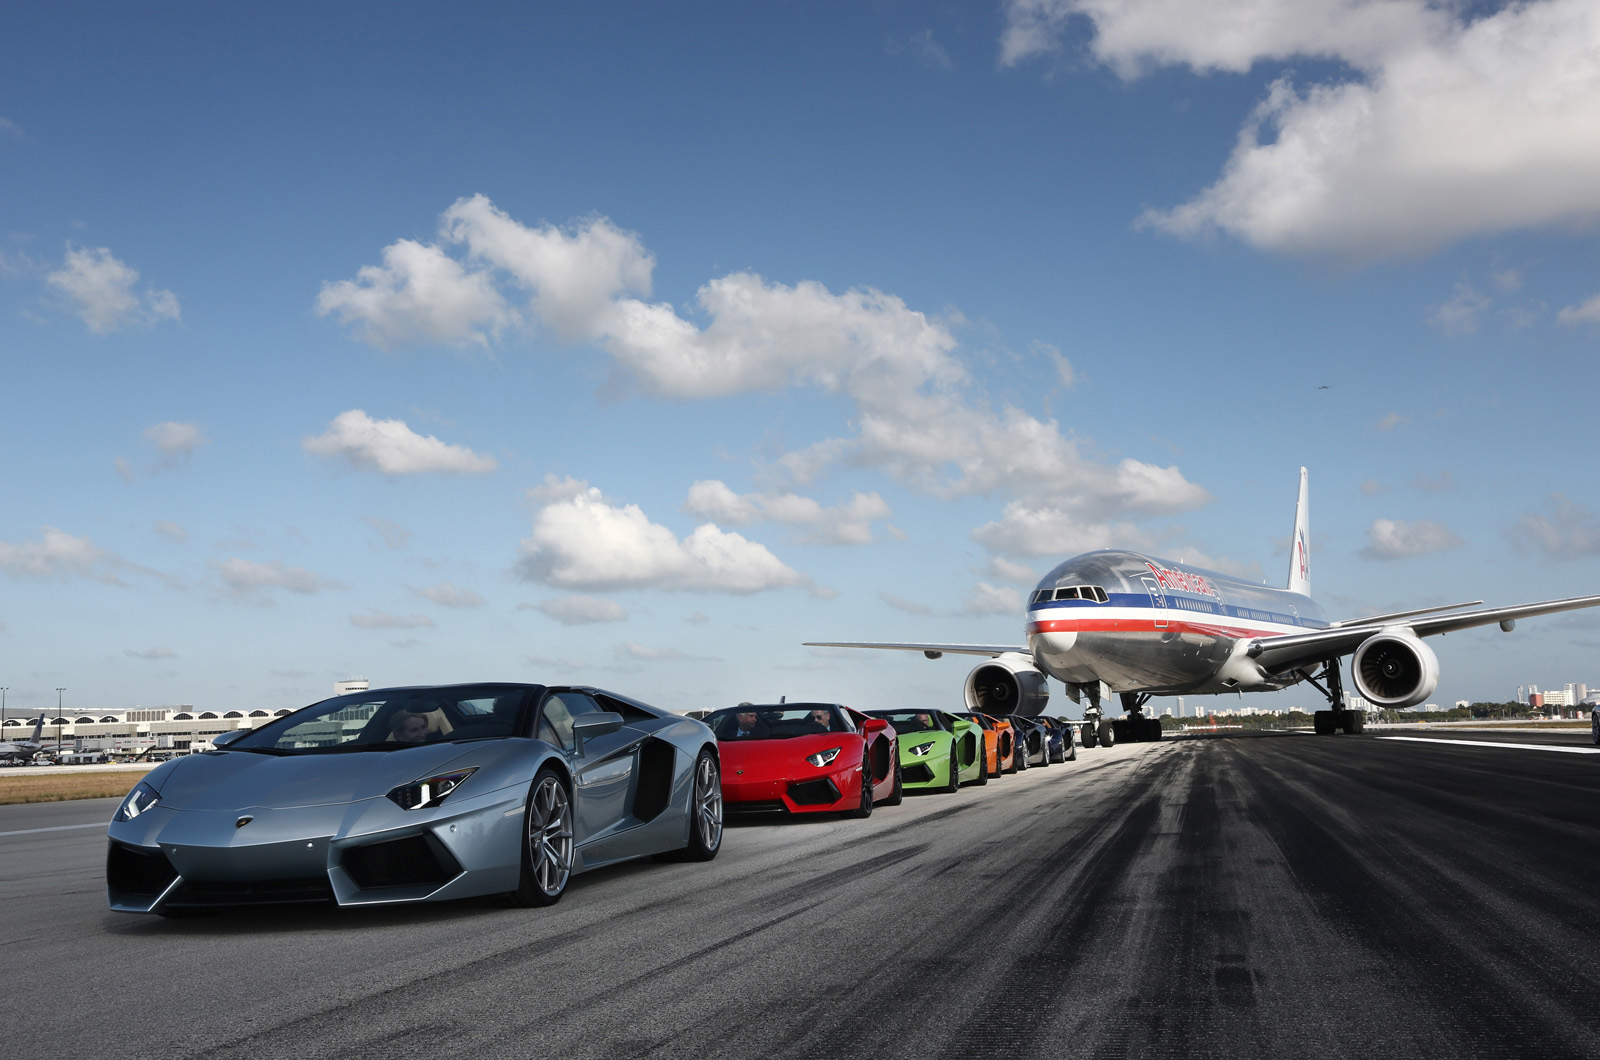 http://images.cdn.autocar.co.uk/sites/autocar.co.uk/files/aventador_roadsters_on_mia_s_runway_1.jpg